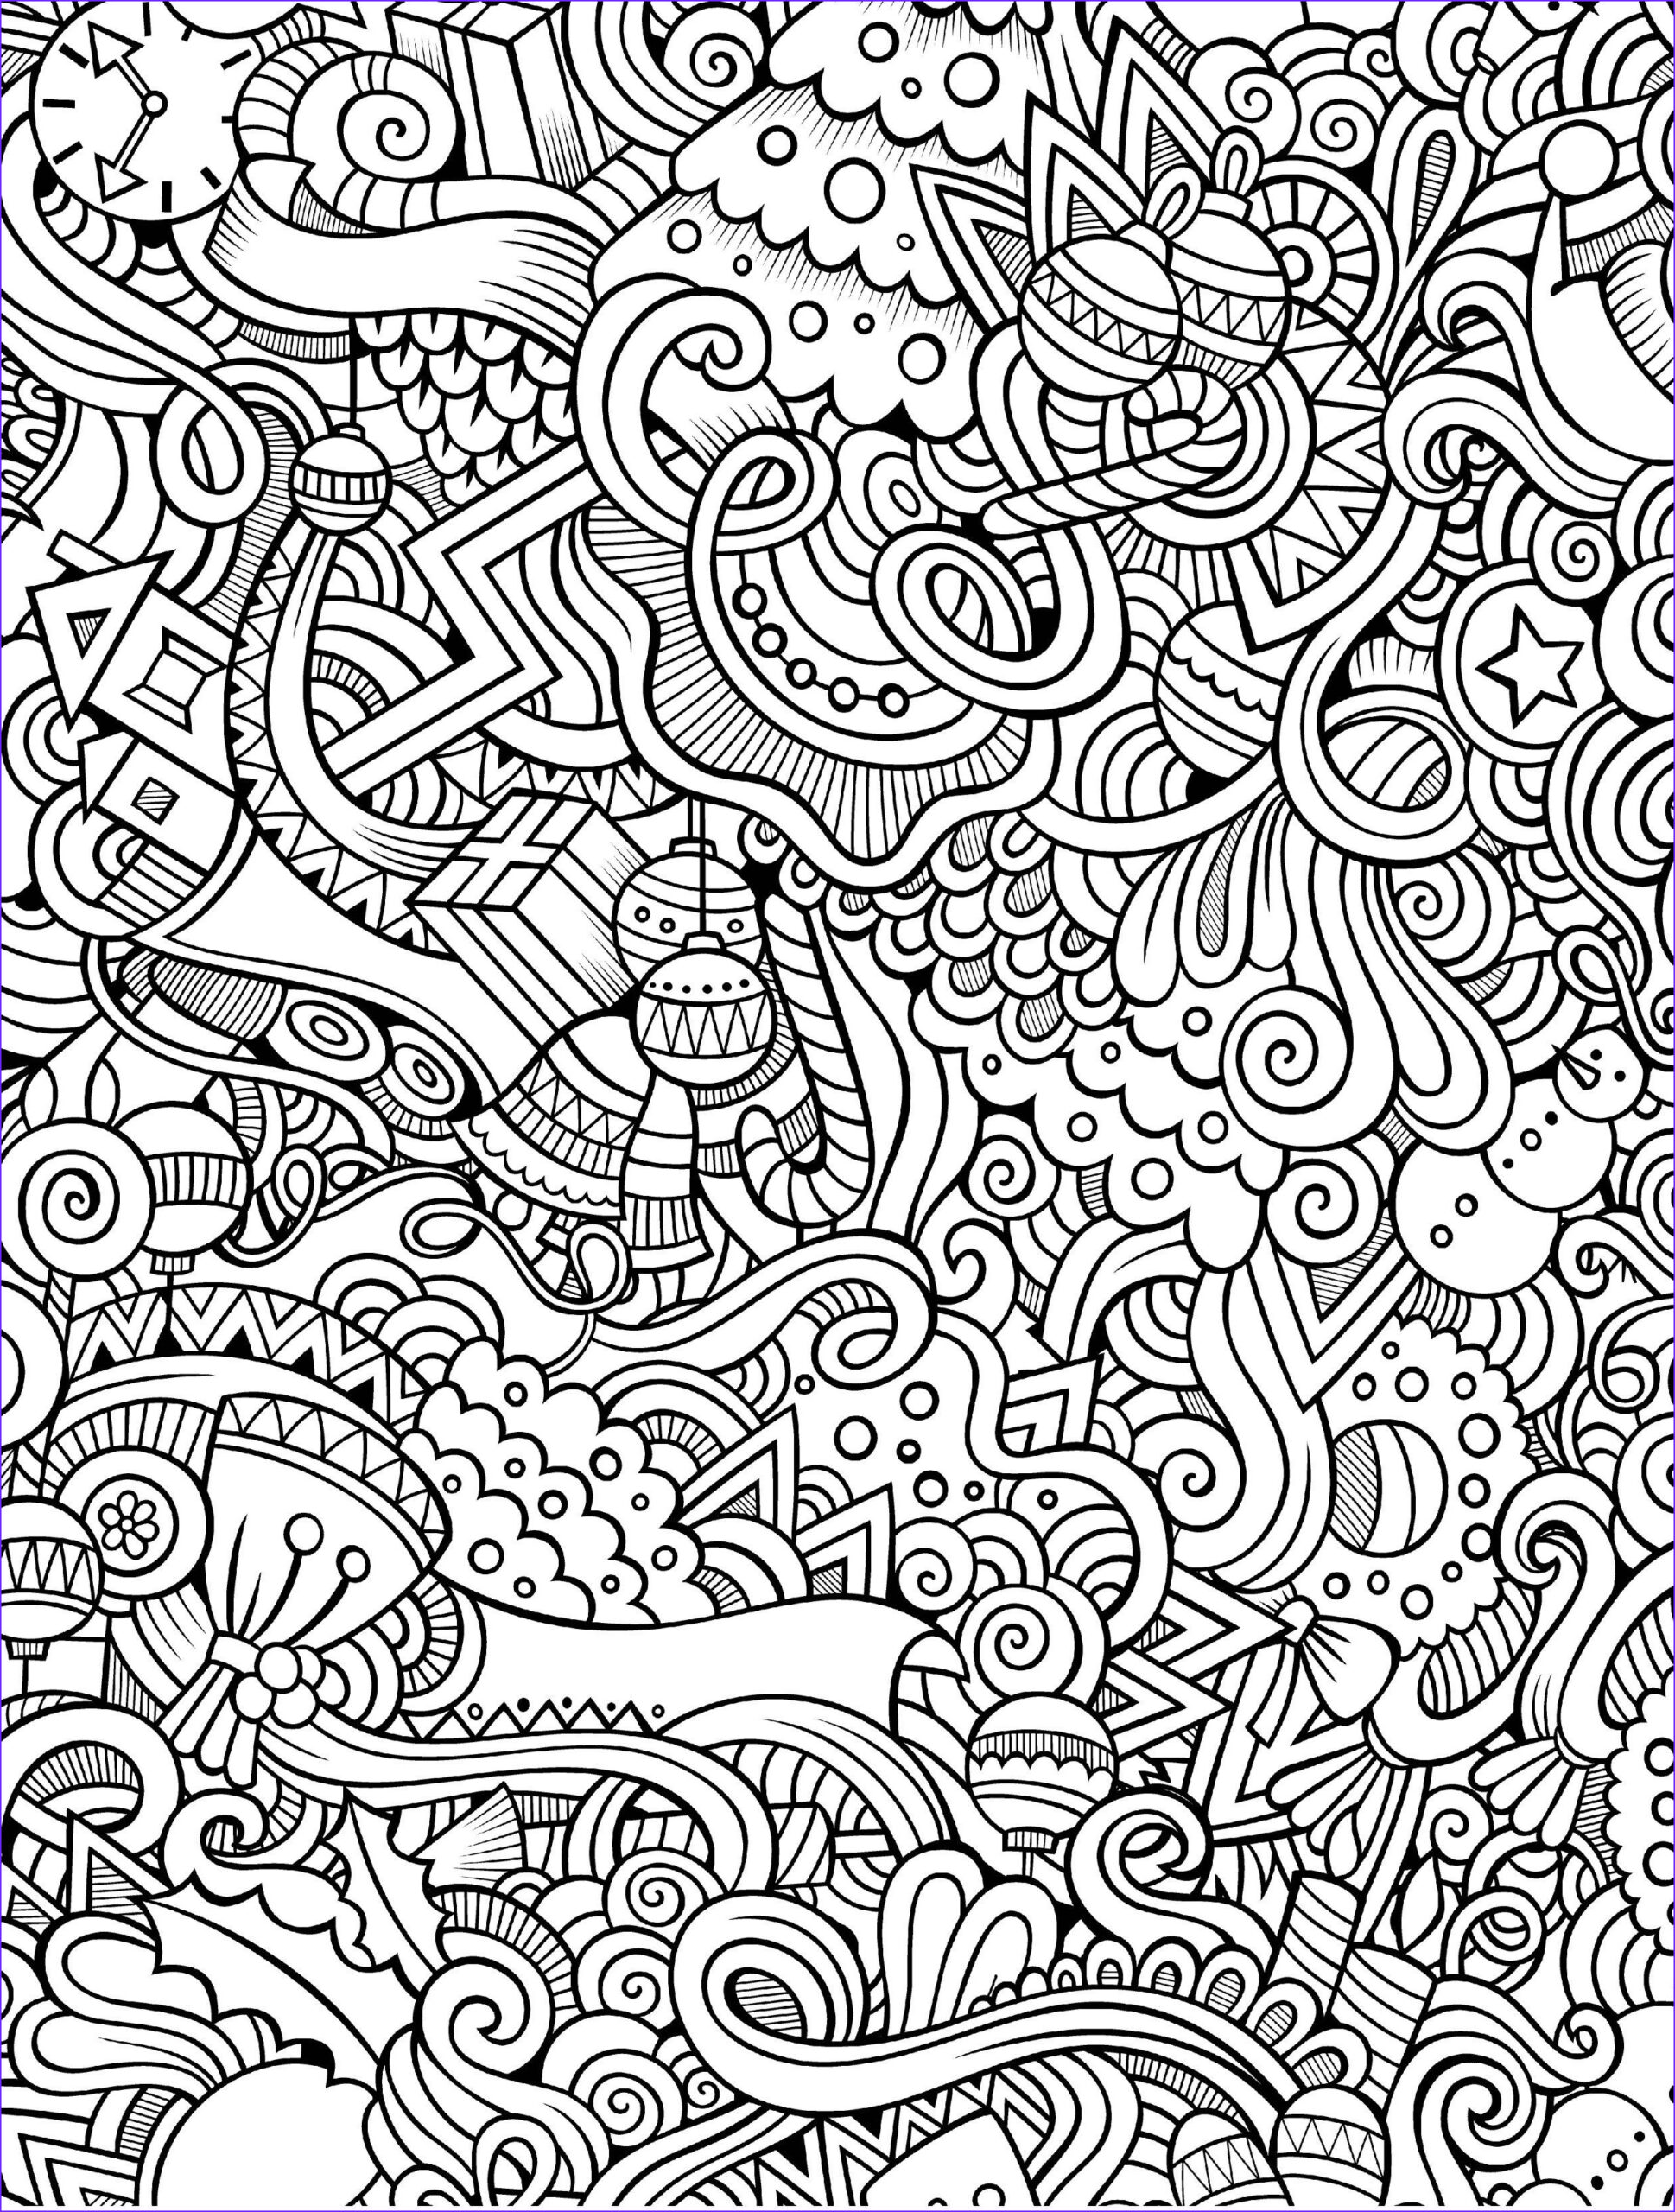 Christmas Coloring Pages Adults Beautiful Photography 10 Free Printable Holiday Adult Coloring Pages